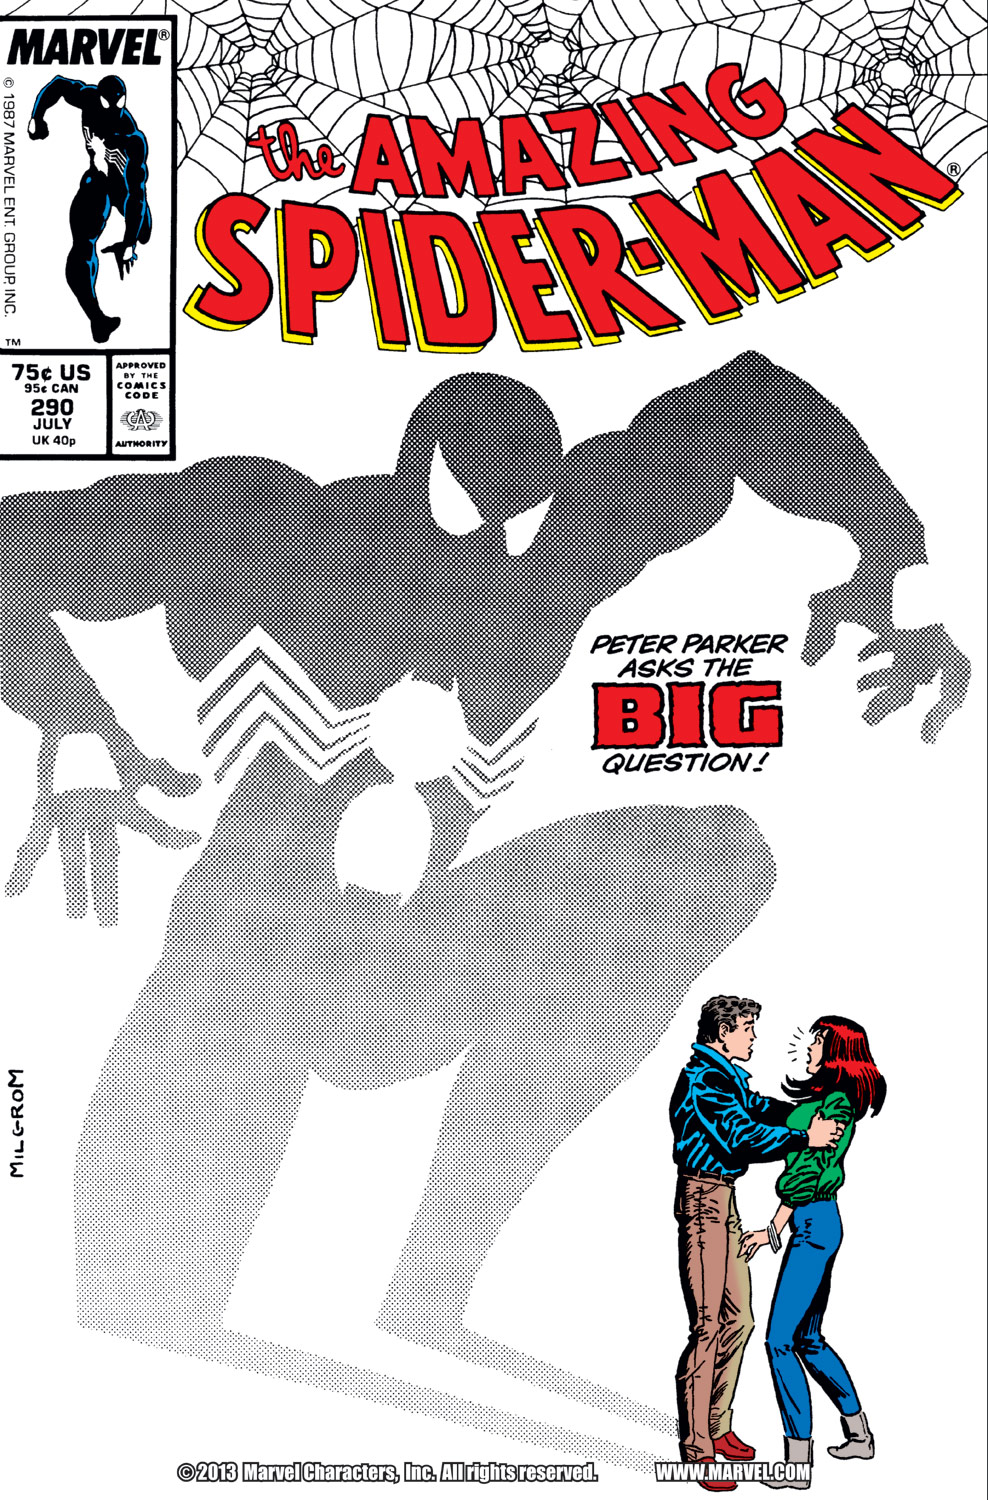 The Amazing Spider-Man (1963) #290